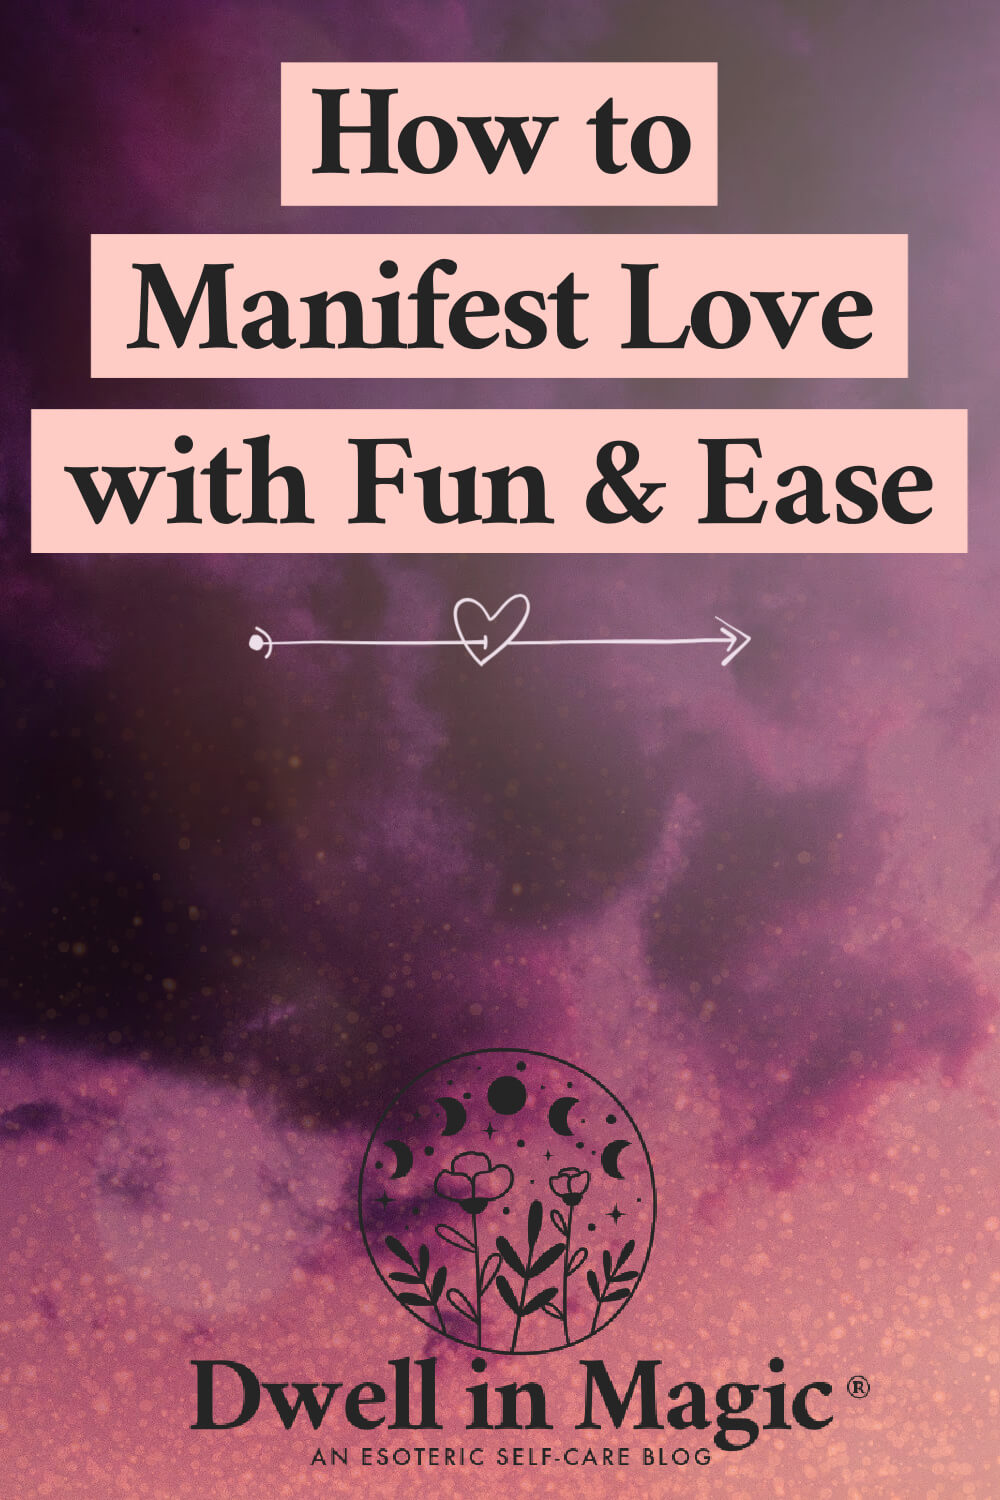 How to manifest love by tapping into the essence of it